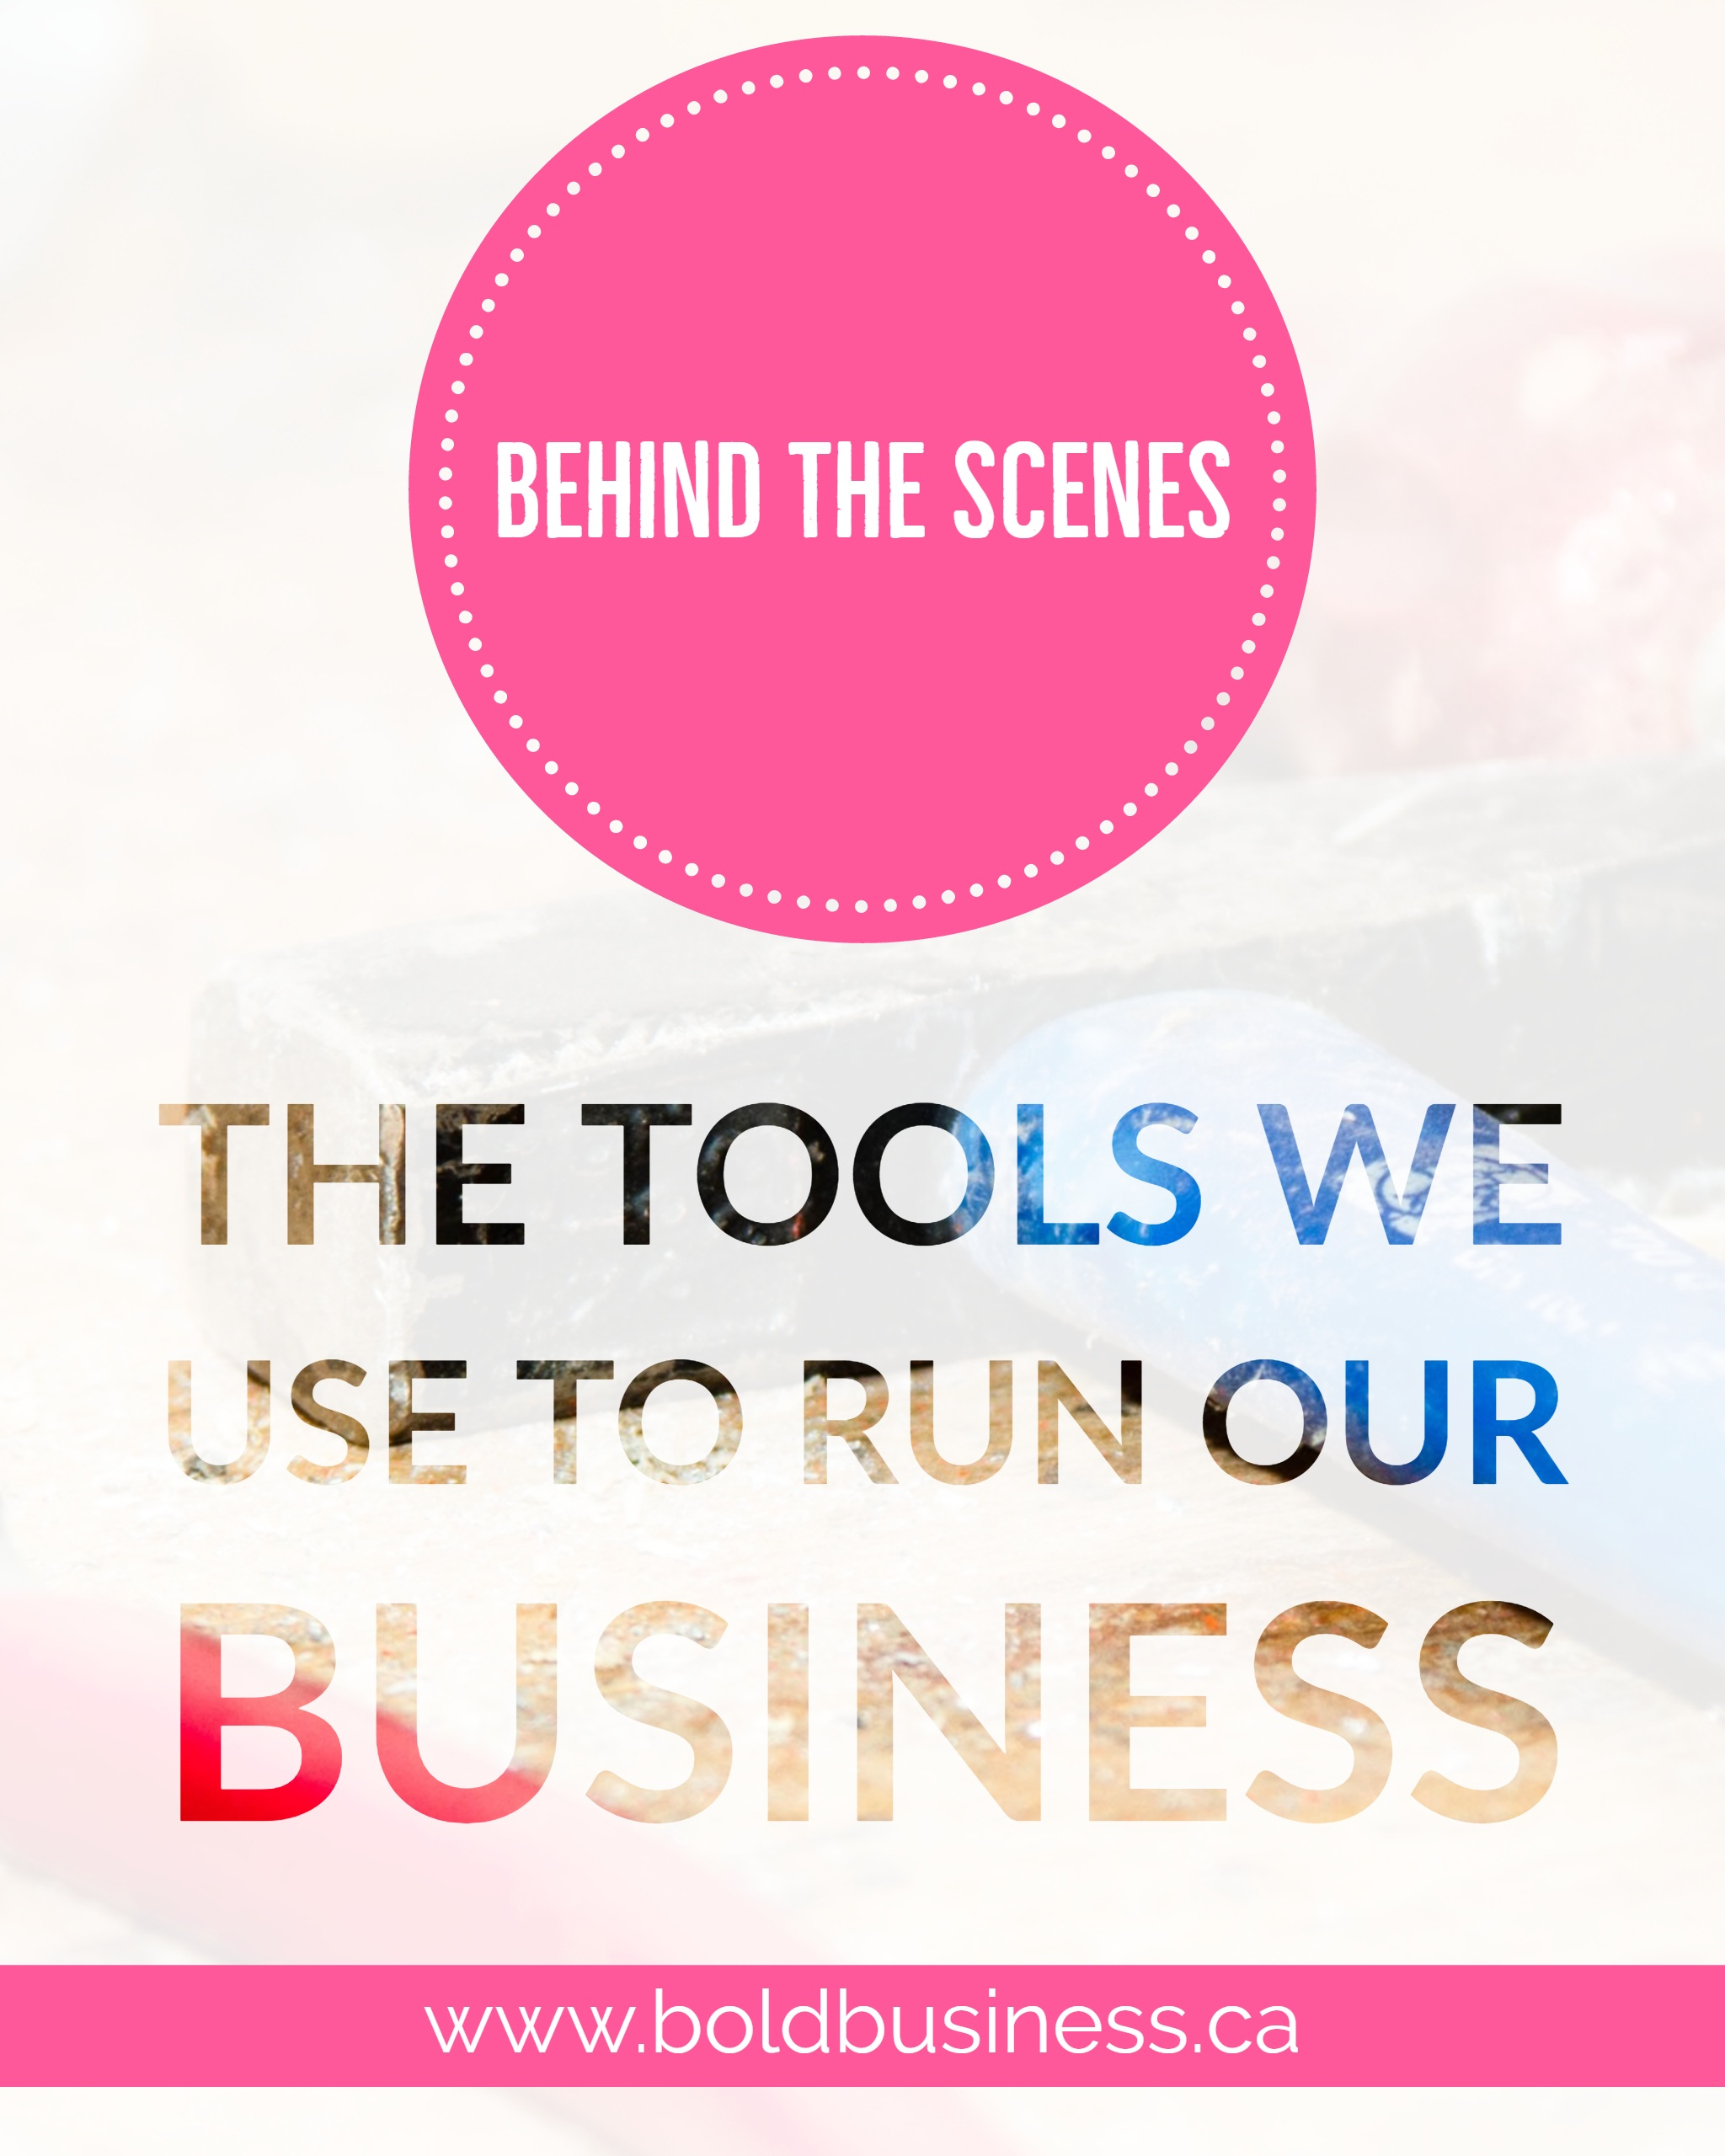 Tools We Use to Run Our Business